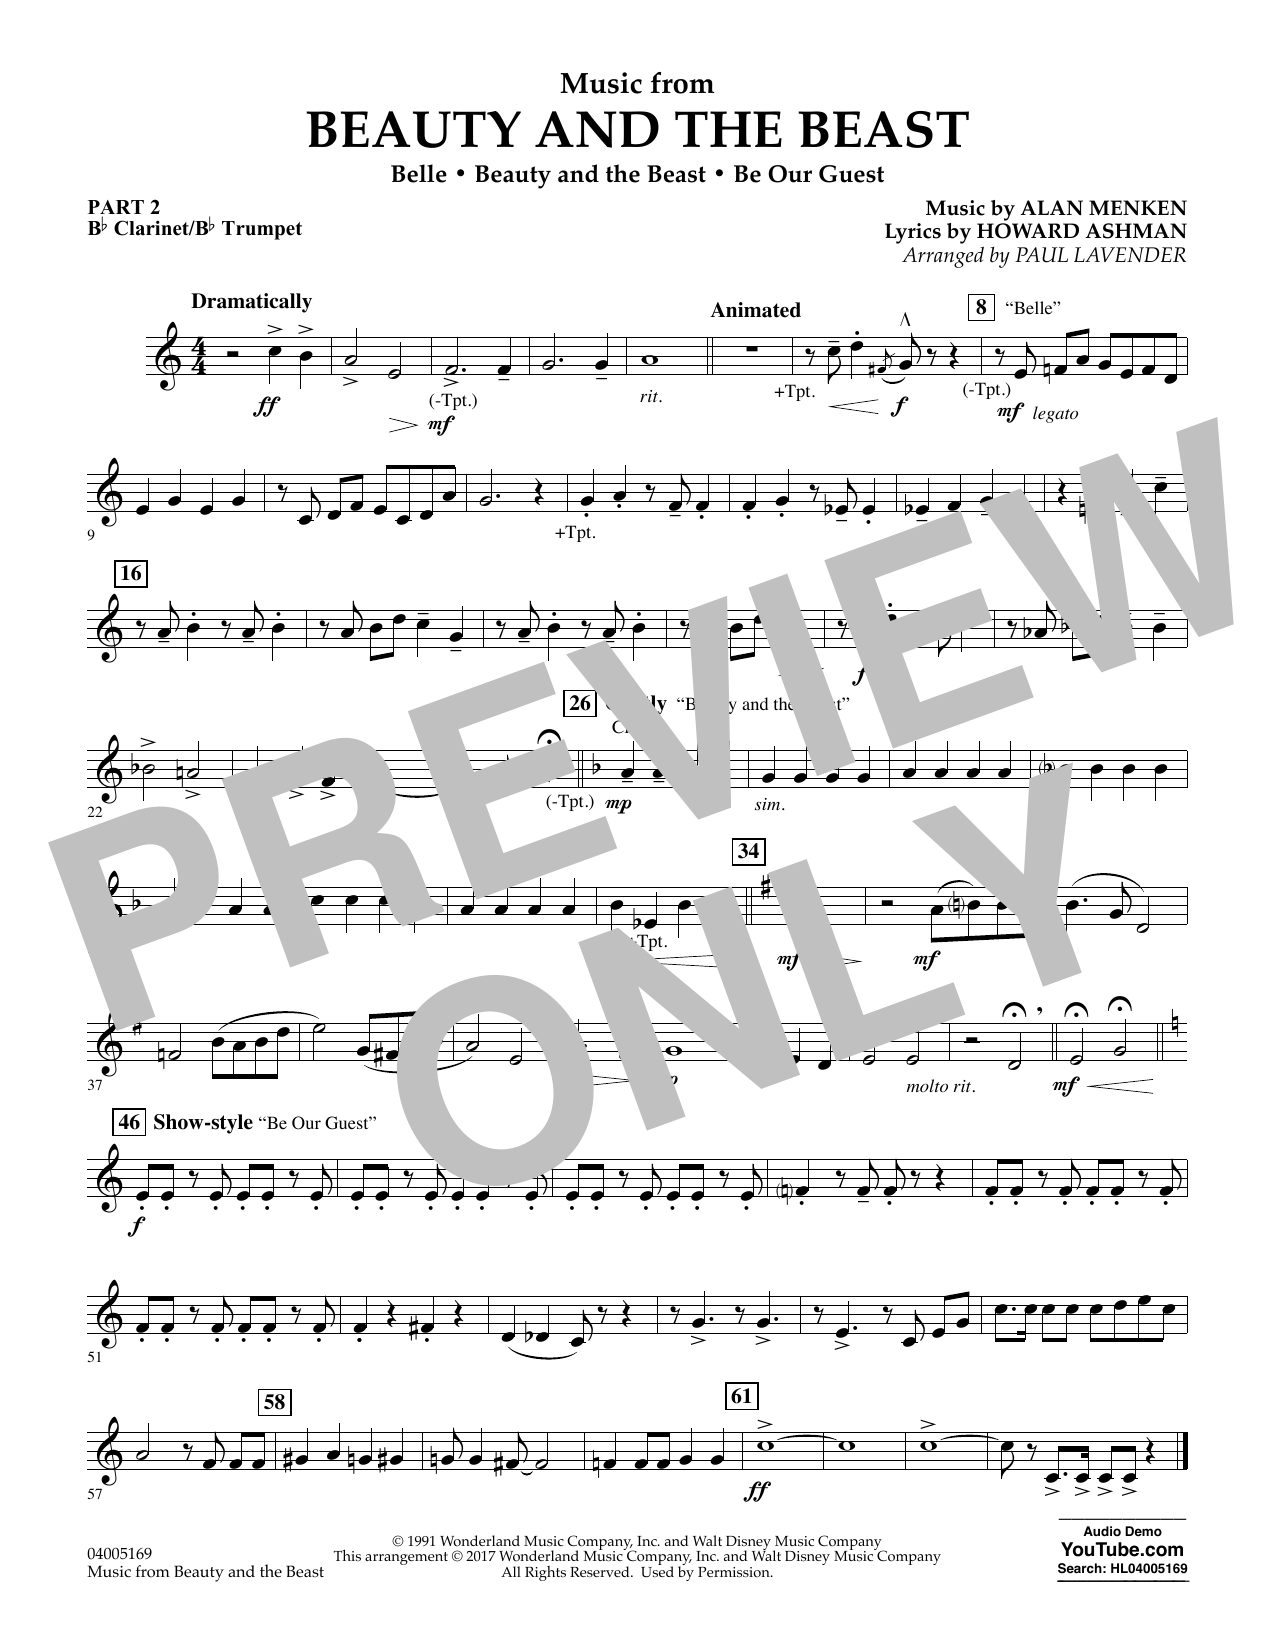 Paul Lavender Music from Beauty and the Beast - Pt.2 - Bb Clarinet/Bb Trumpet sheet music notes and chords. Download Printable PDF.